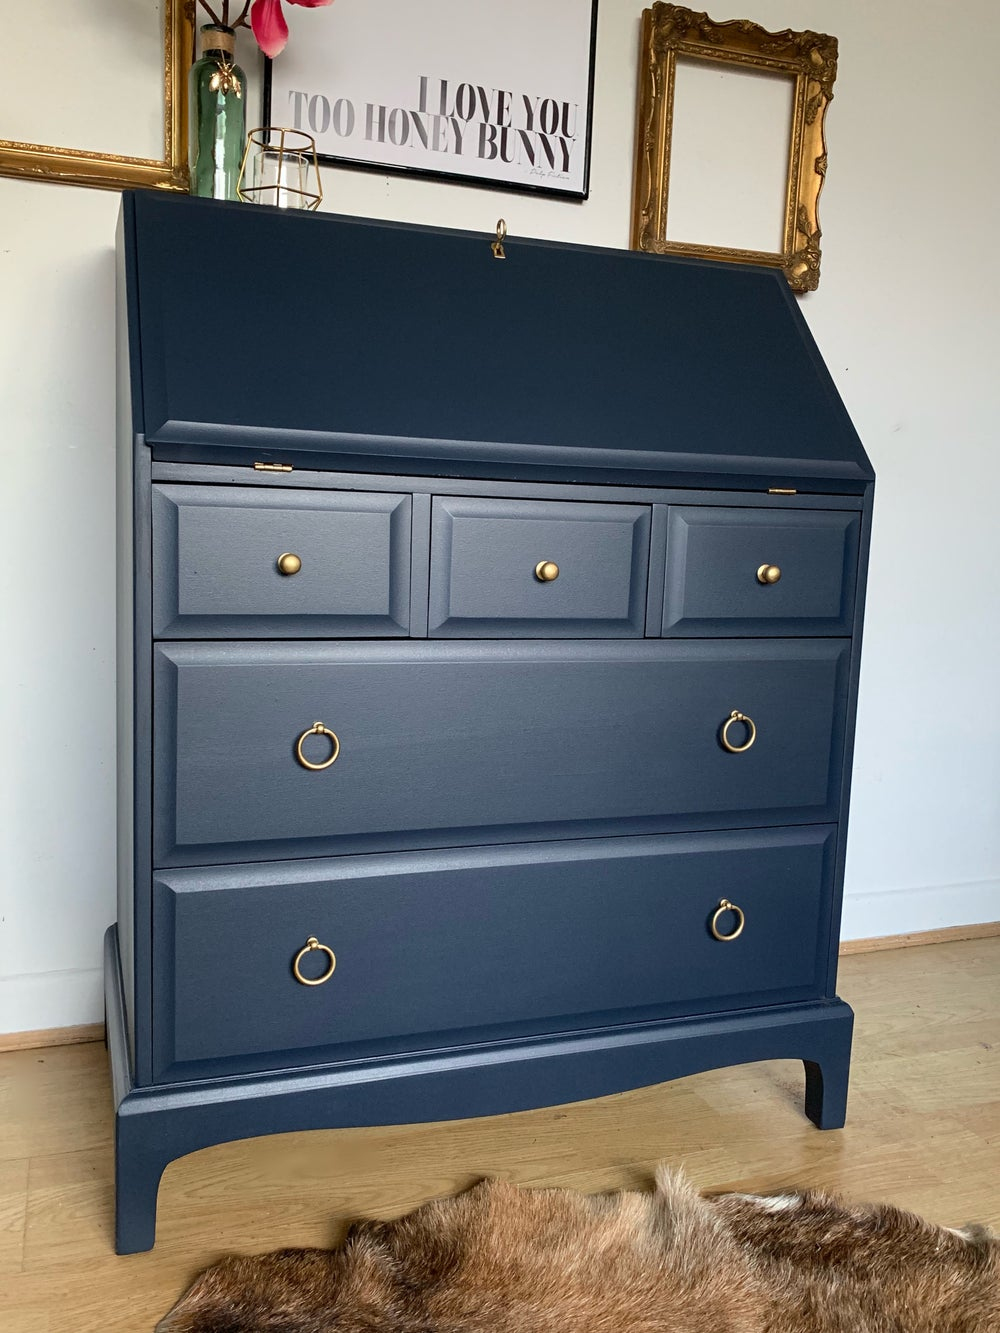 Image of Stunning dark blue bureau desk with key